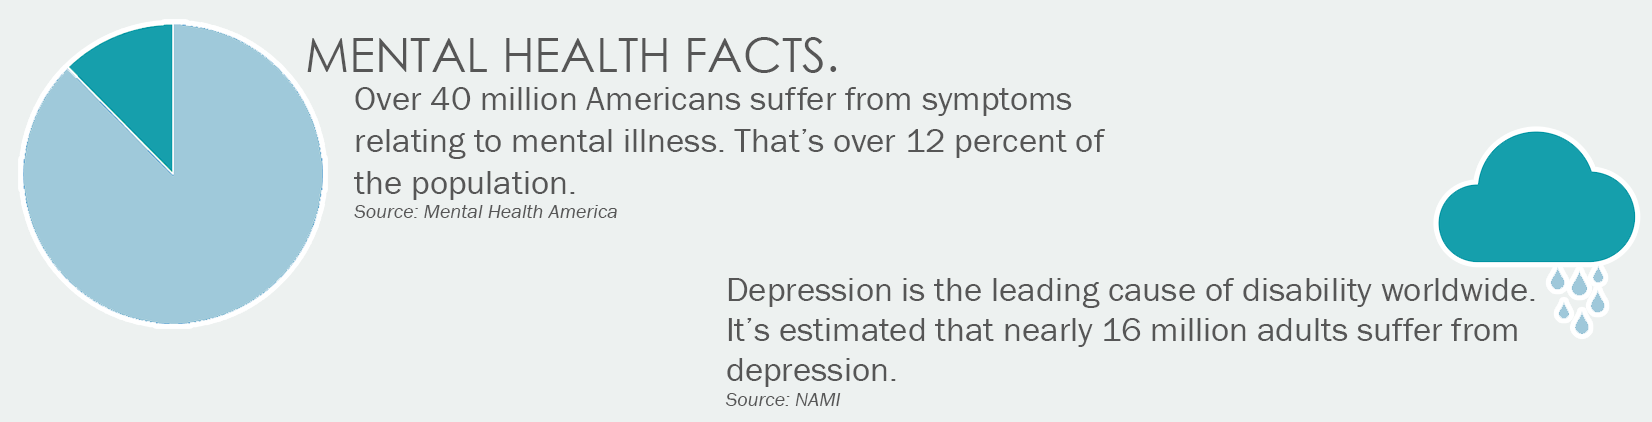 Mental Health Facts.1